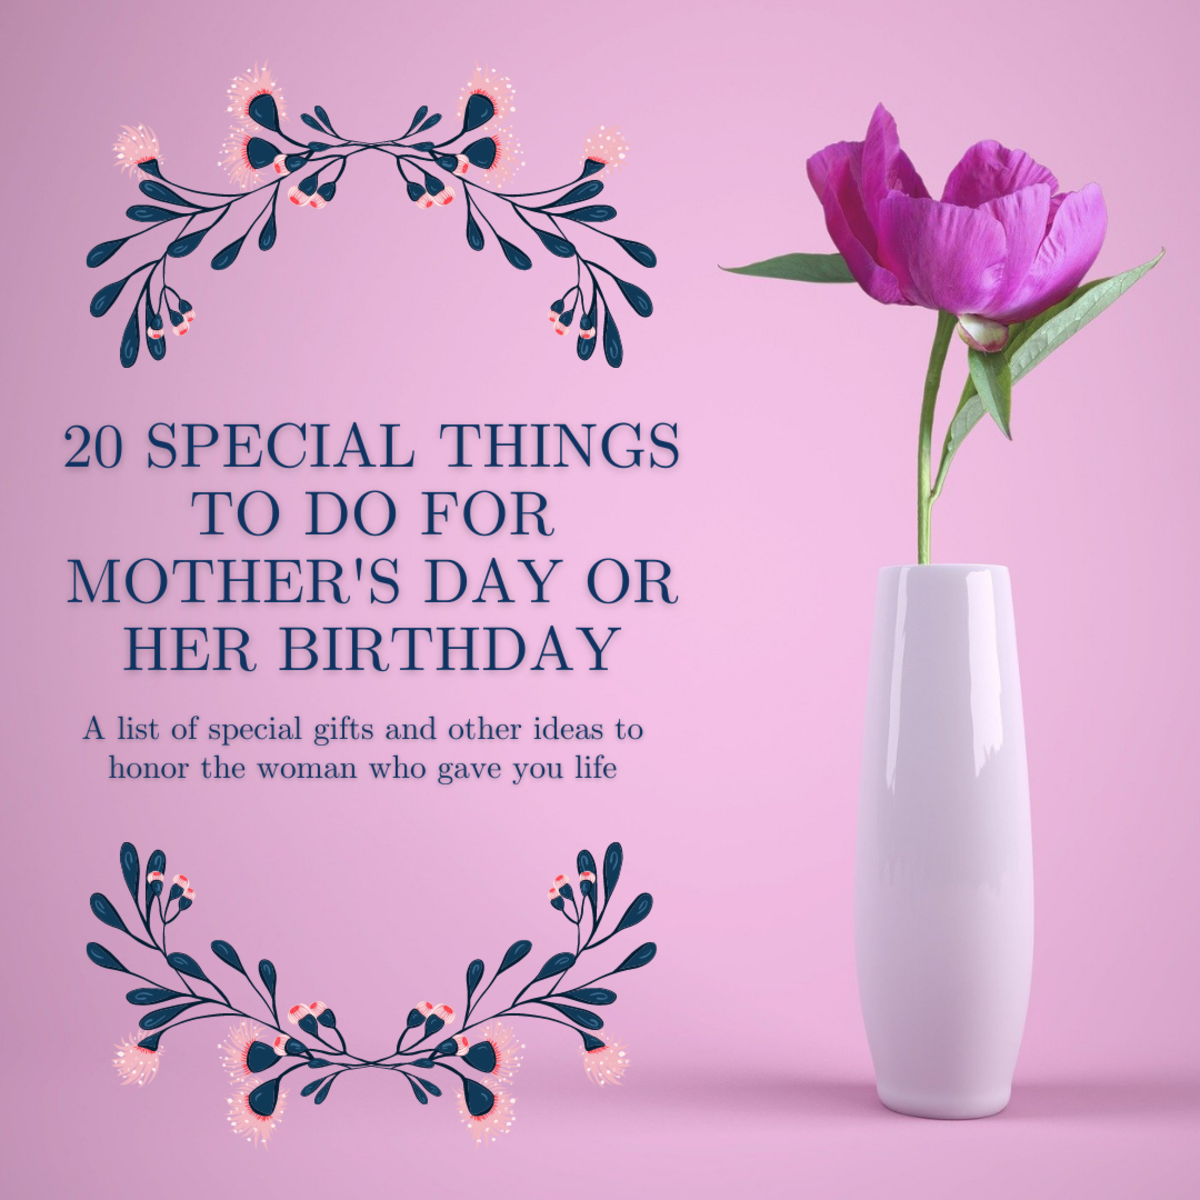 This article will provide a list of 20 different ways to honor your mother on her special day.